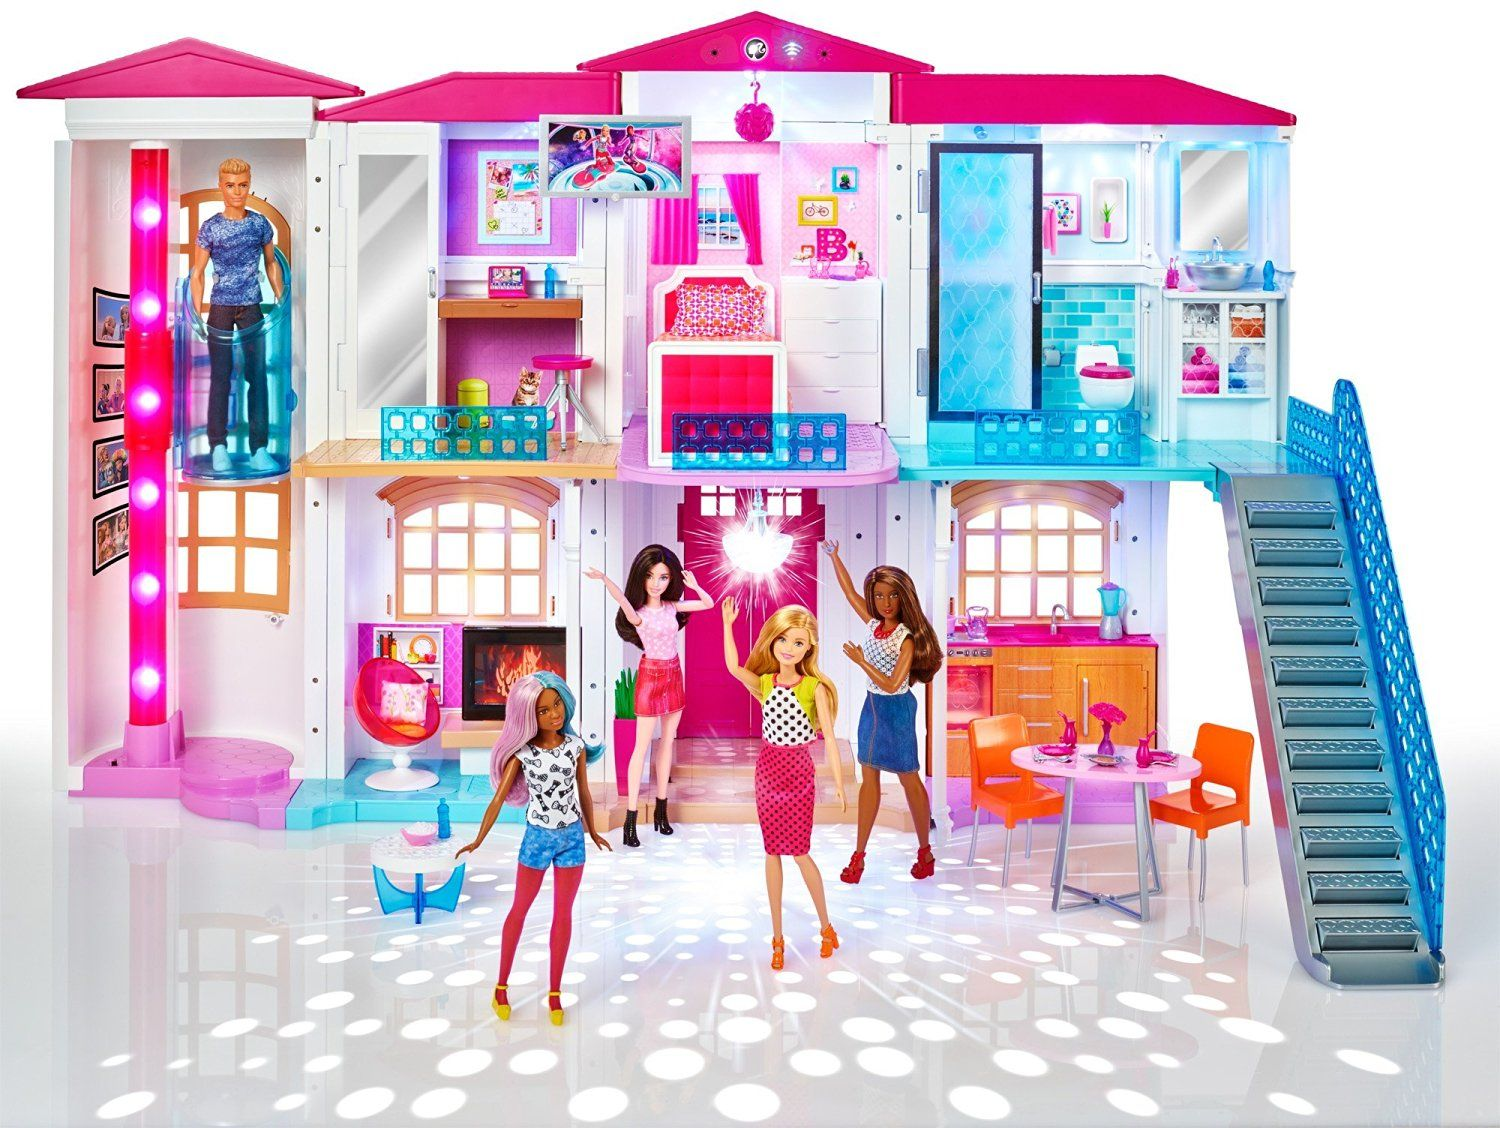 10 awesome barbie doll house models - Best 25 Barbie Dream House Games Ideas On Pinterest Barbie House Games Barbie Castle And Minecraft